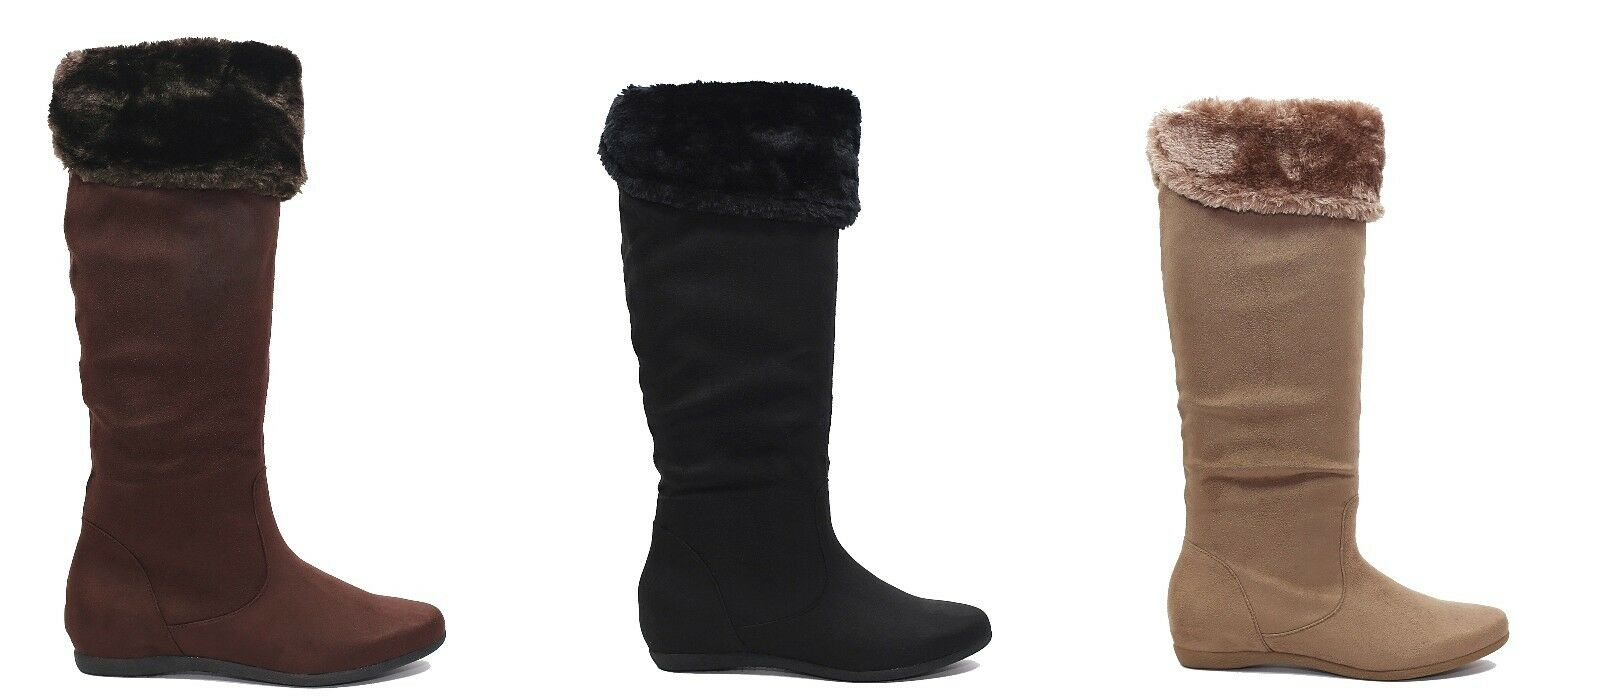 Women's Round Toe Flat Platform Mid-Calf Knee High Boots Shoes Size 5 -10